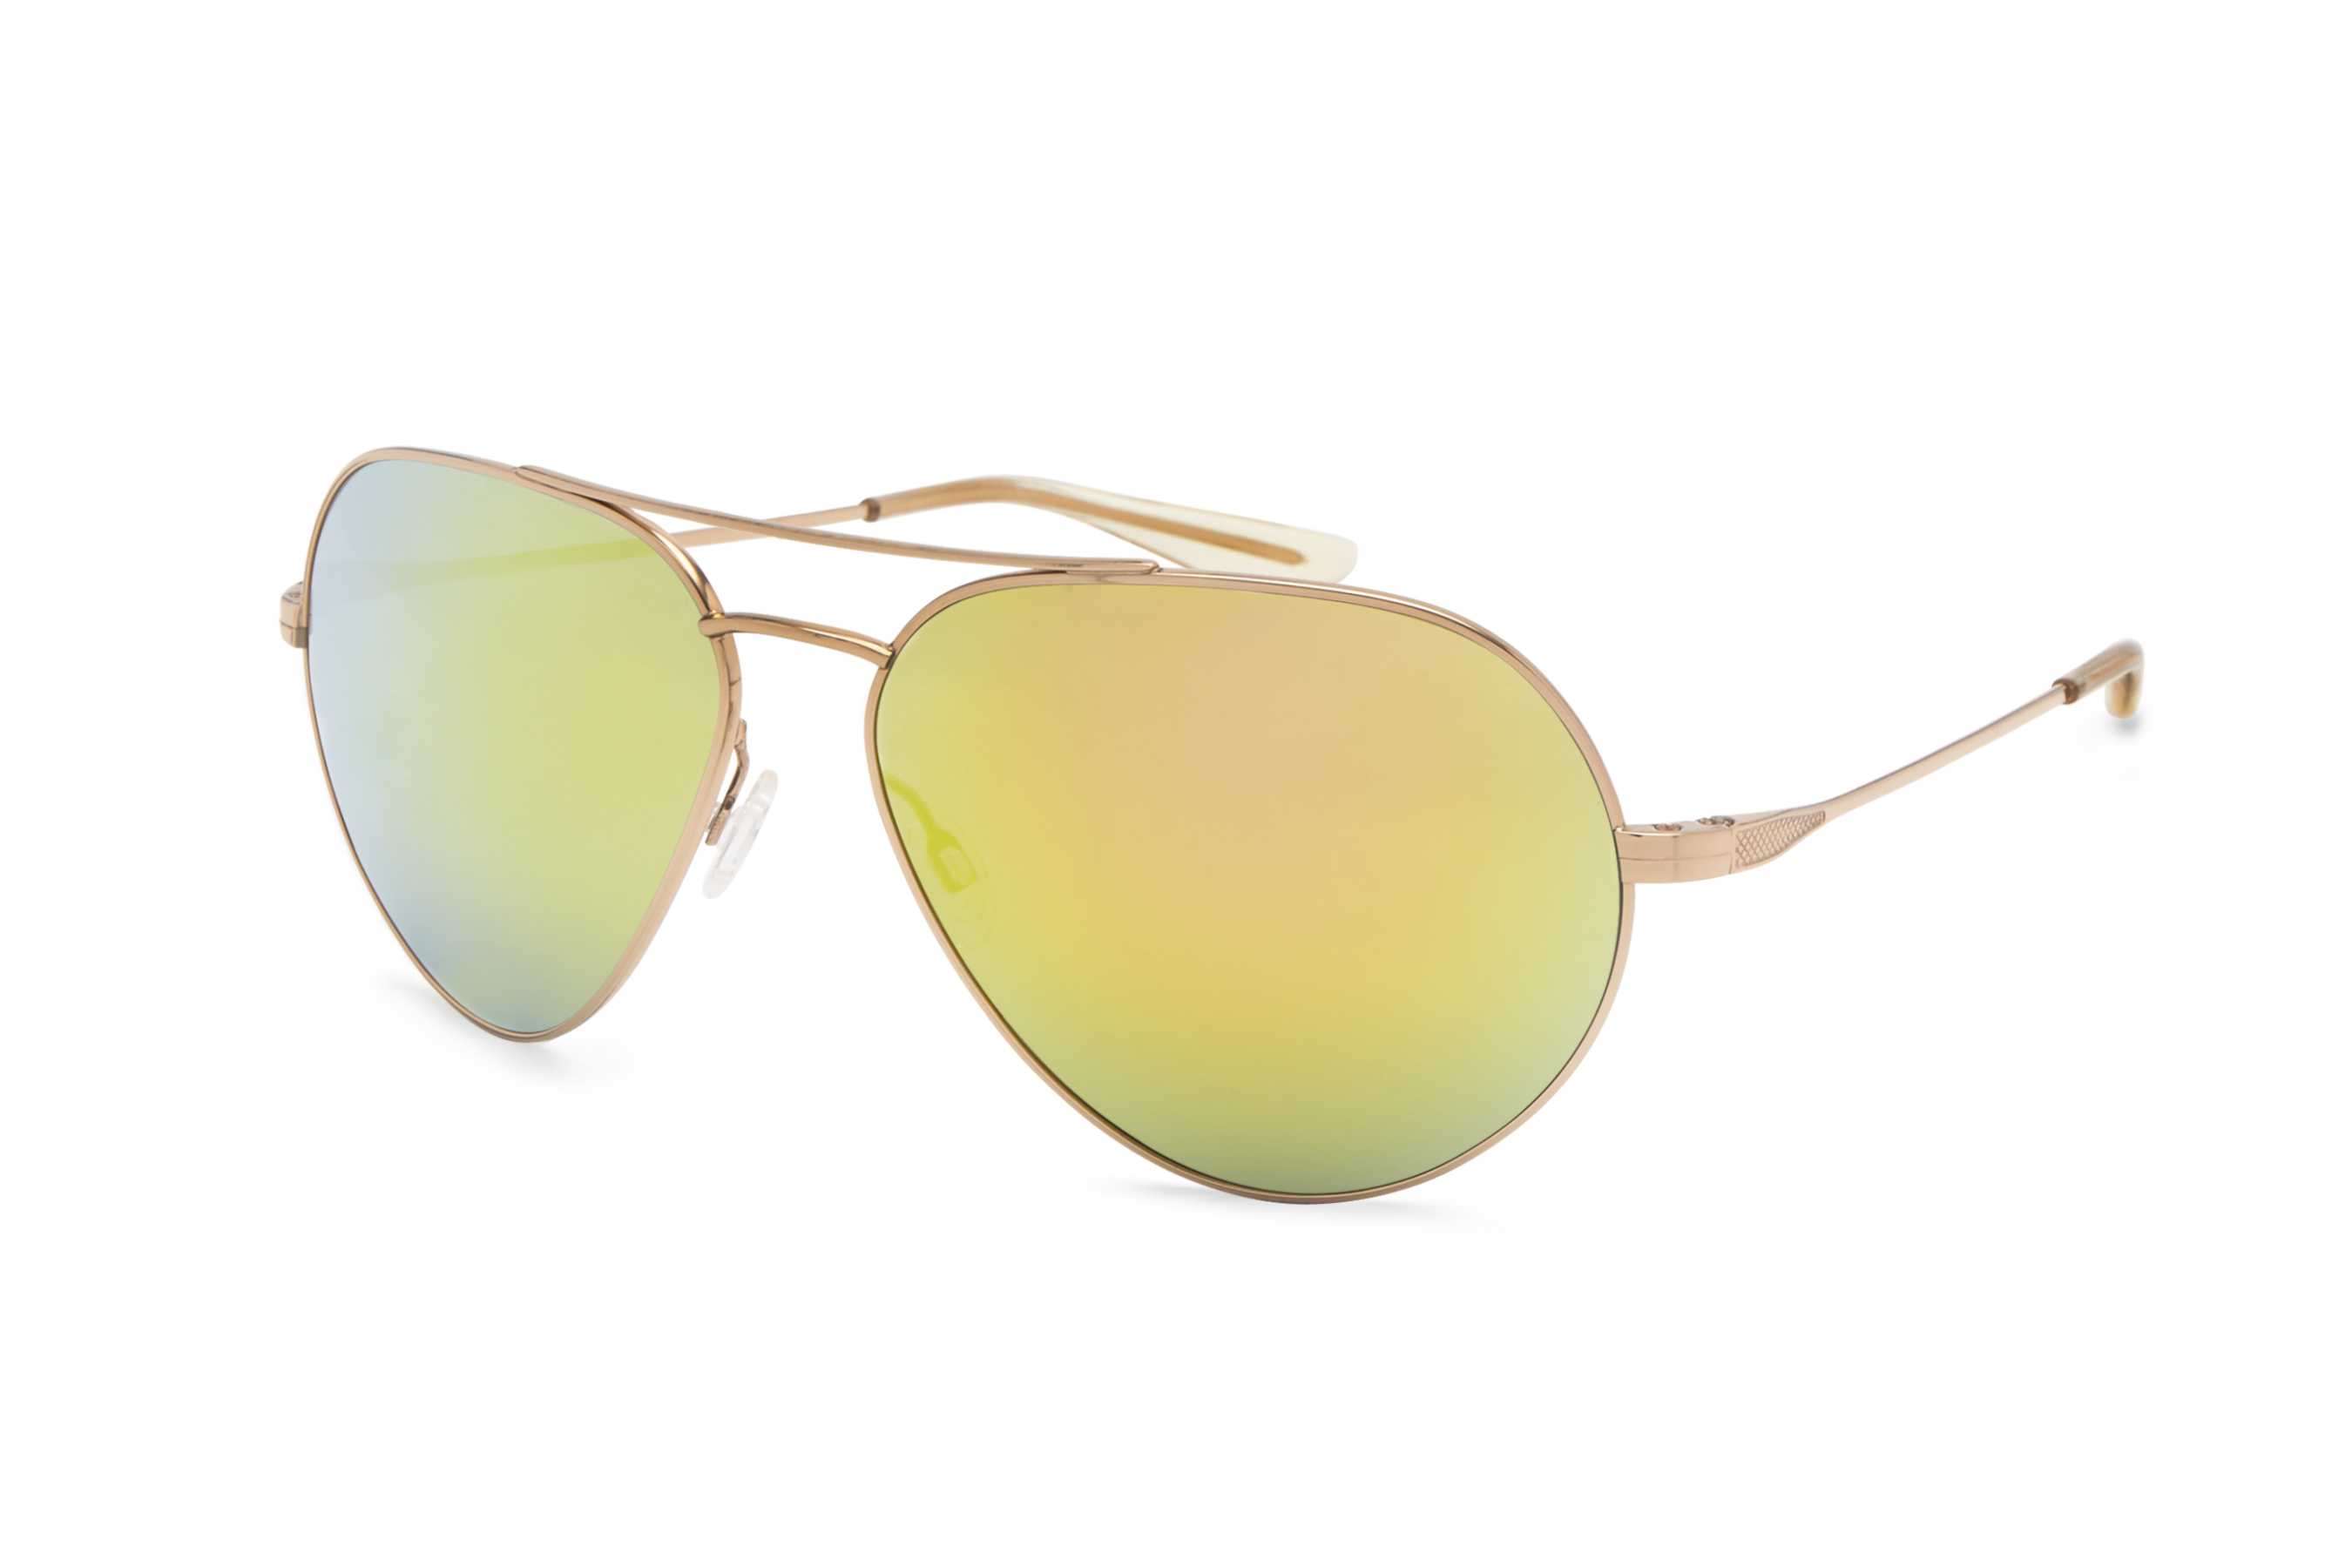 BARTON PERREIRA | frame: COMMODORE in GOLD METAL with EGYPTIAN MIRROR